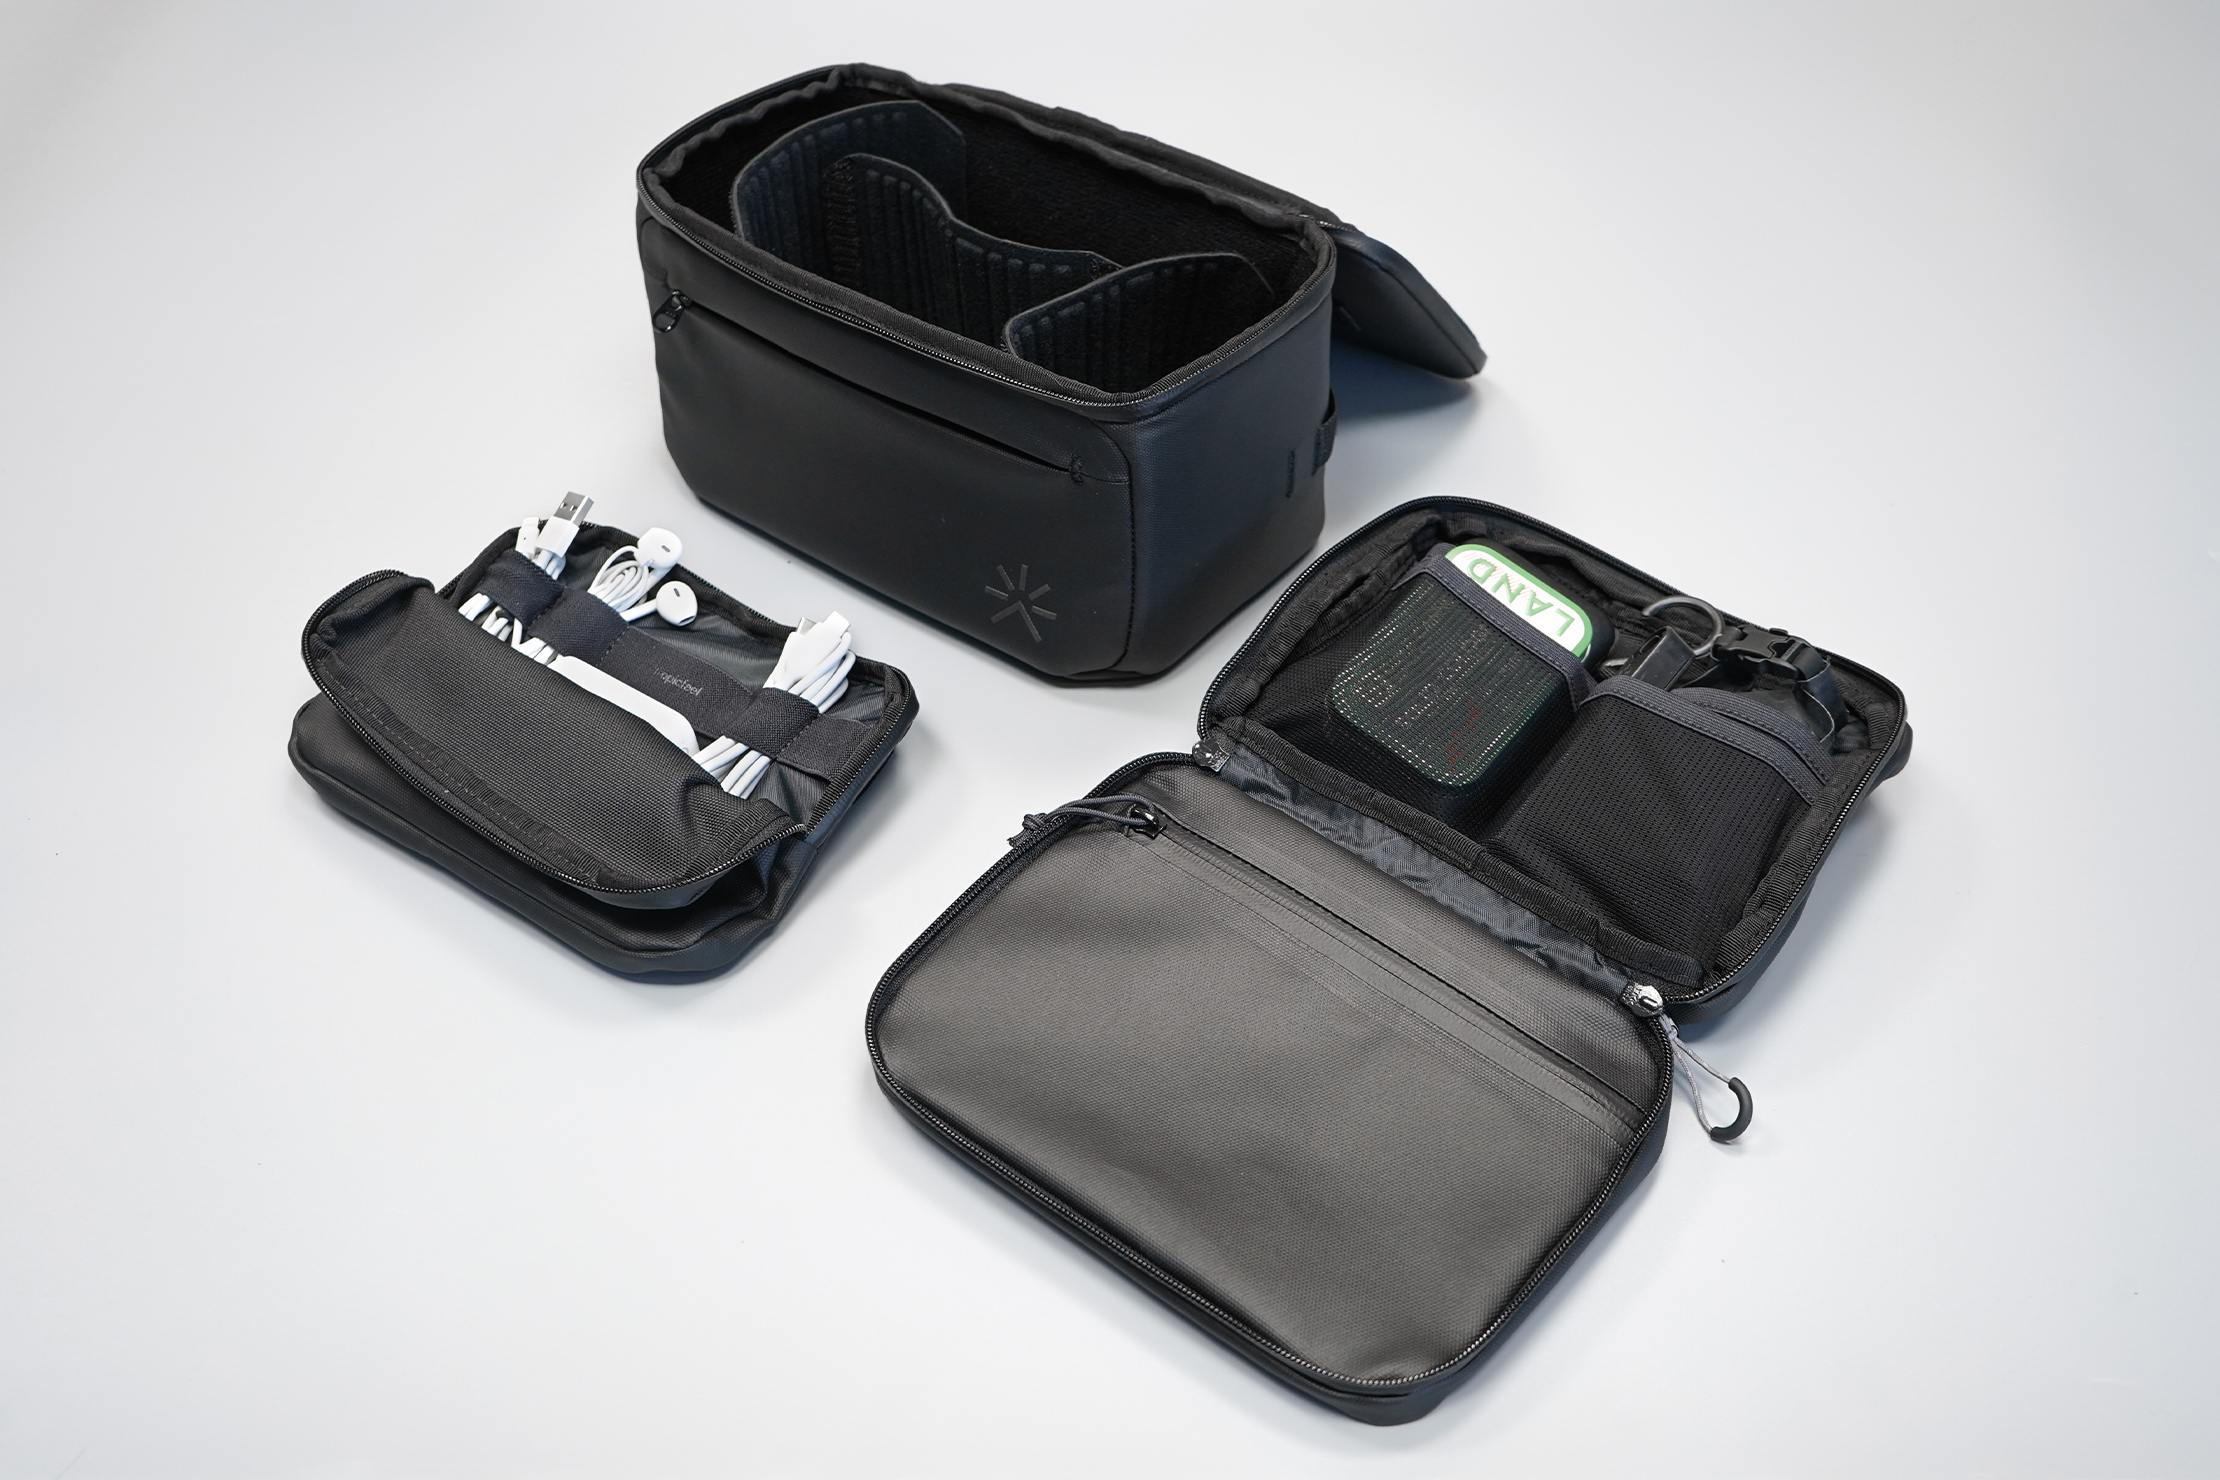 Tropicfeel Shell Travel Backpack | The roster of accessories: a camera cube, a dopp kit, and a tech pouch